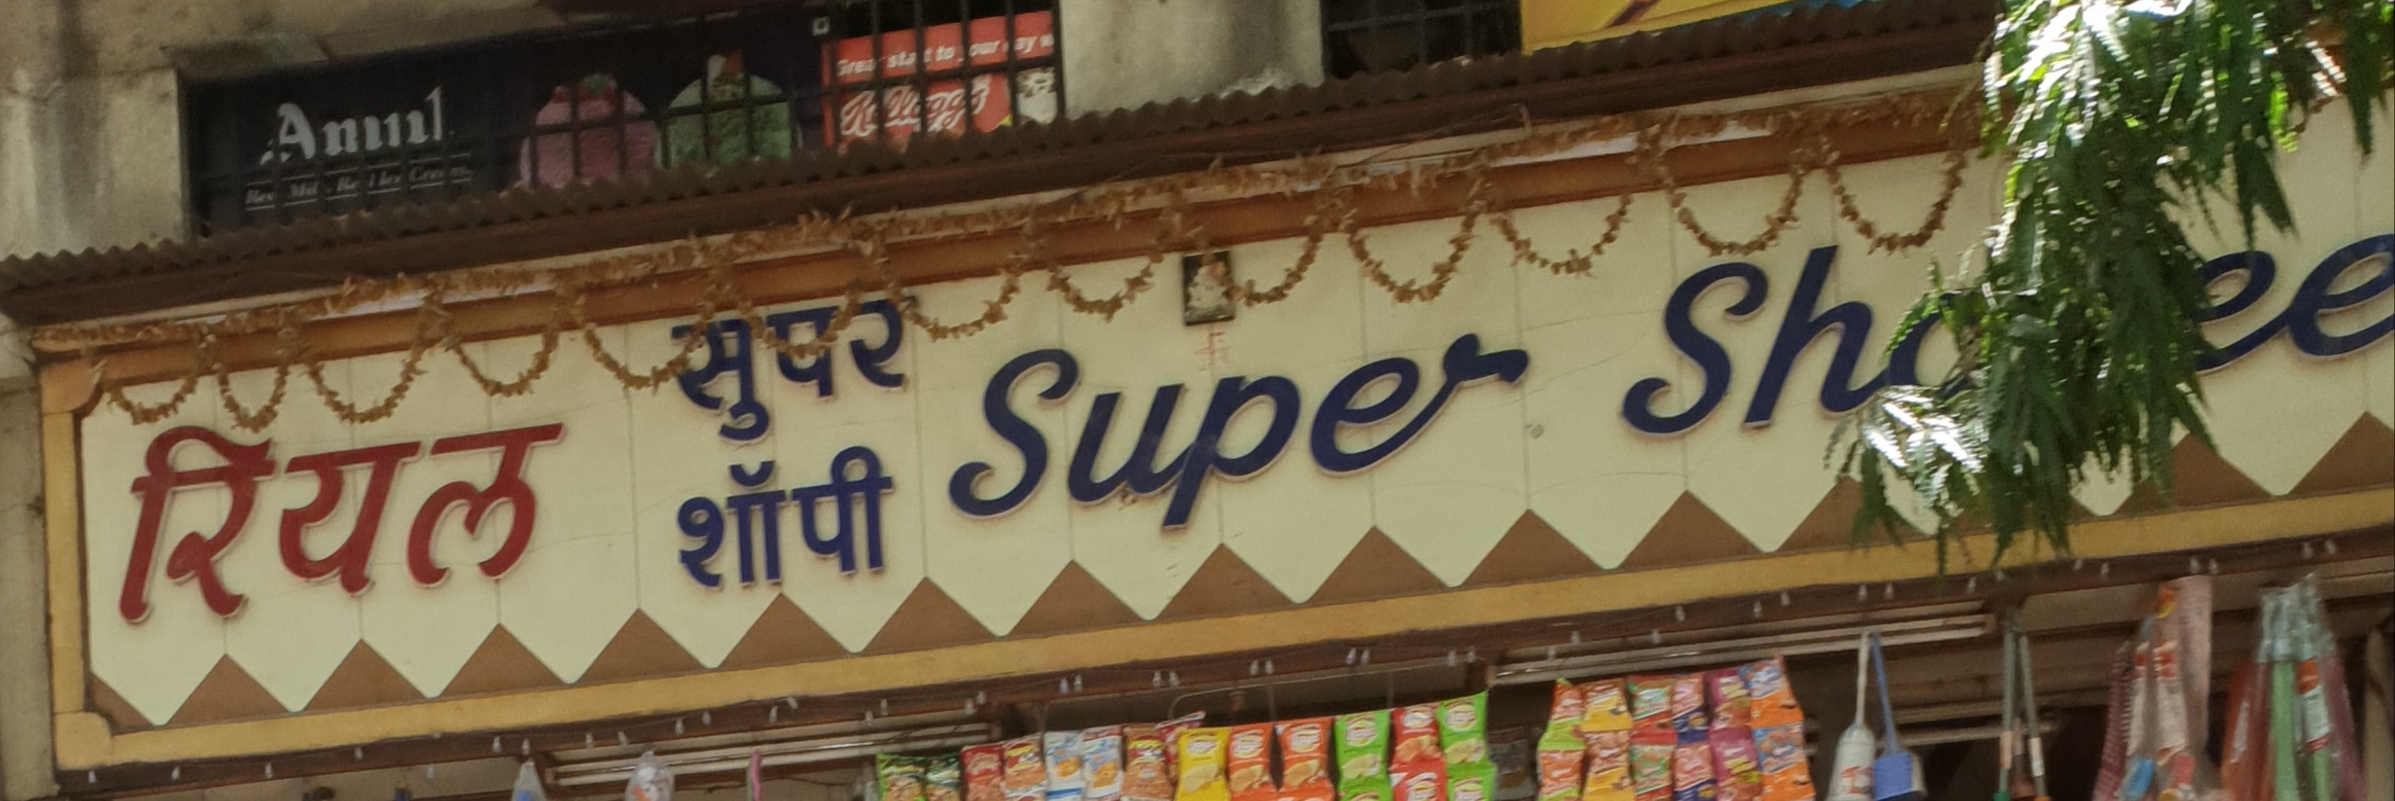 Real super shoppee Grocery Store in Wanwadi Pune